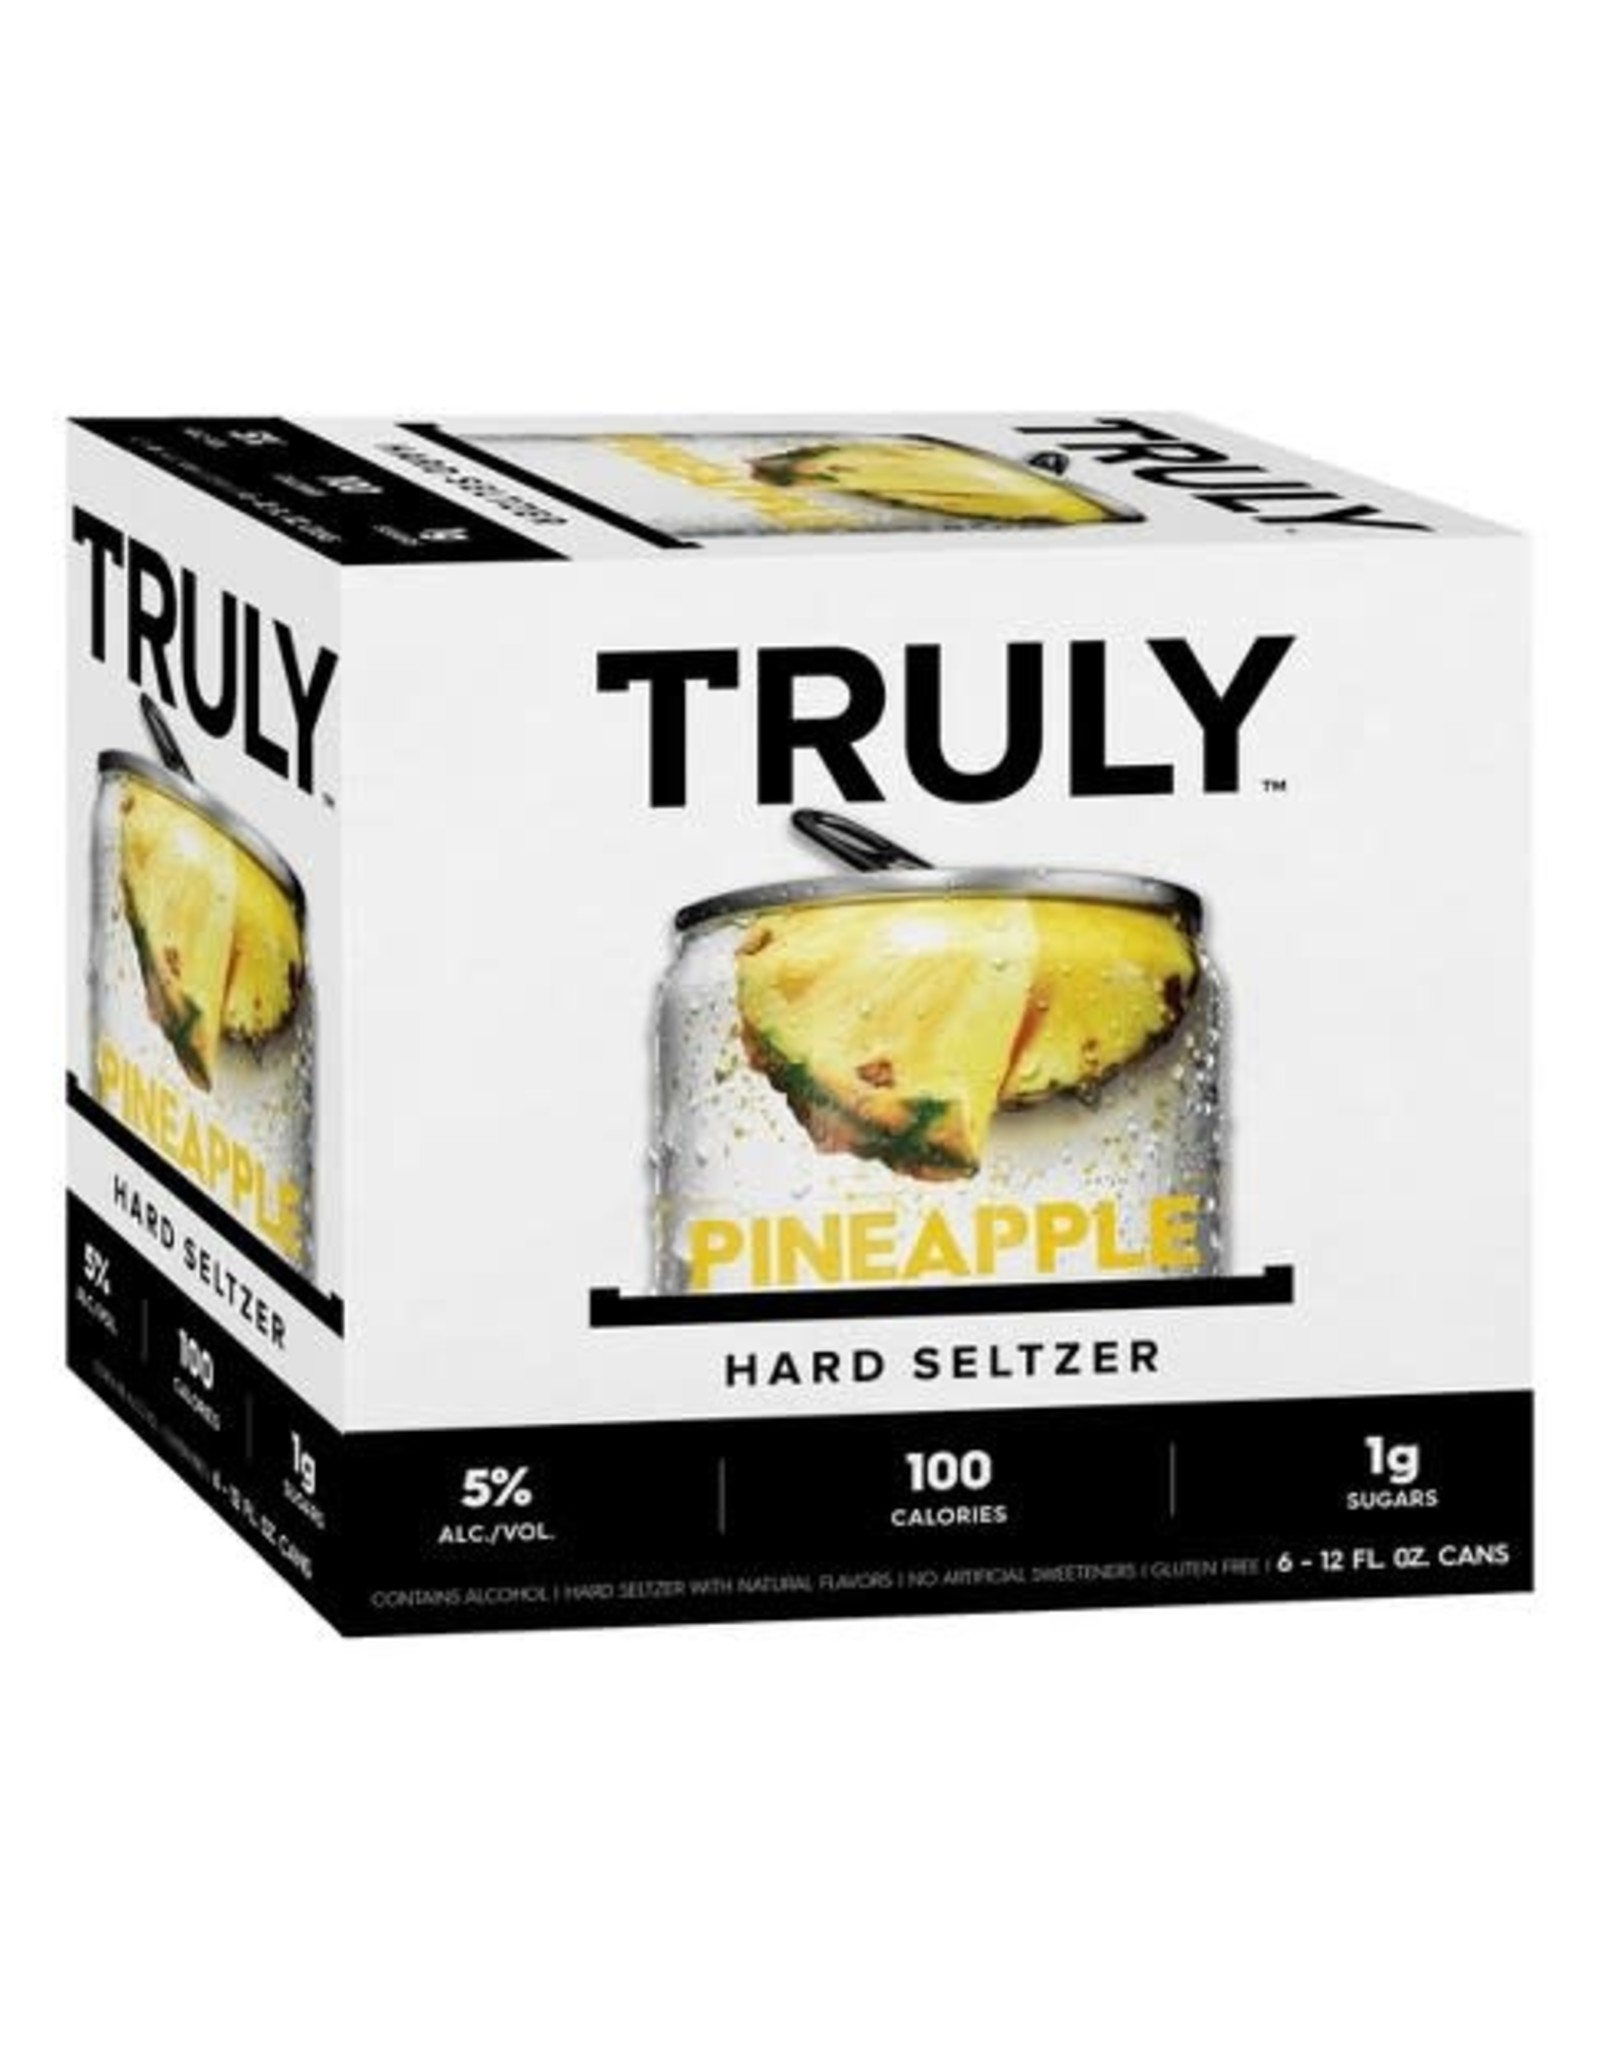 TRULY SPIKED PINEAPPLE 4/6/12OZ CN